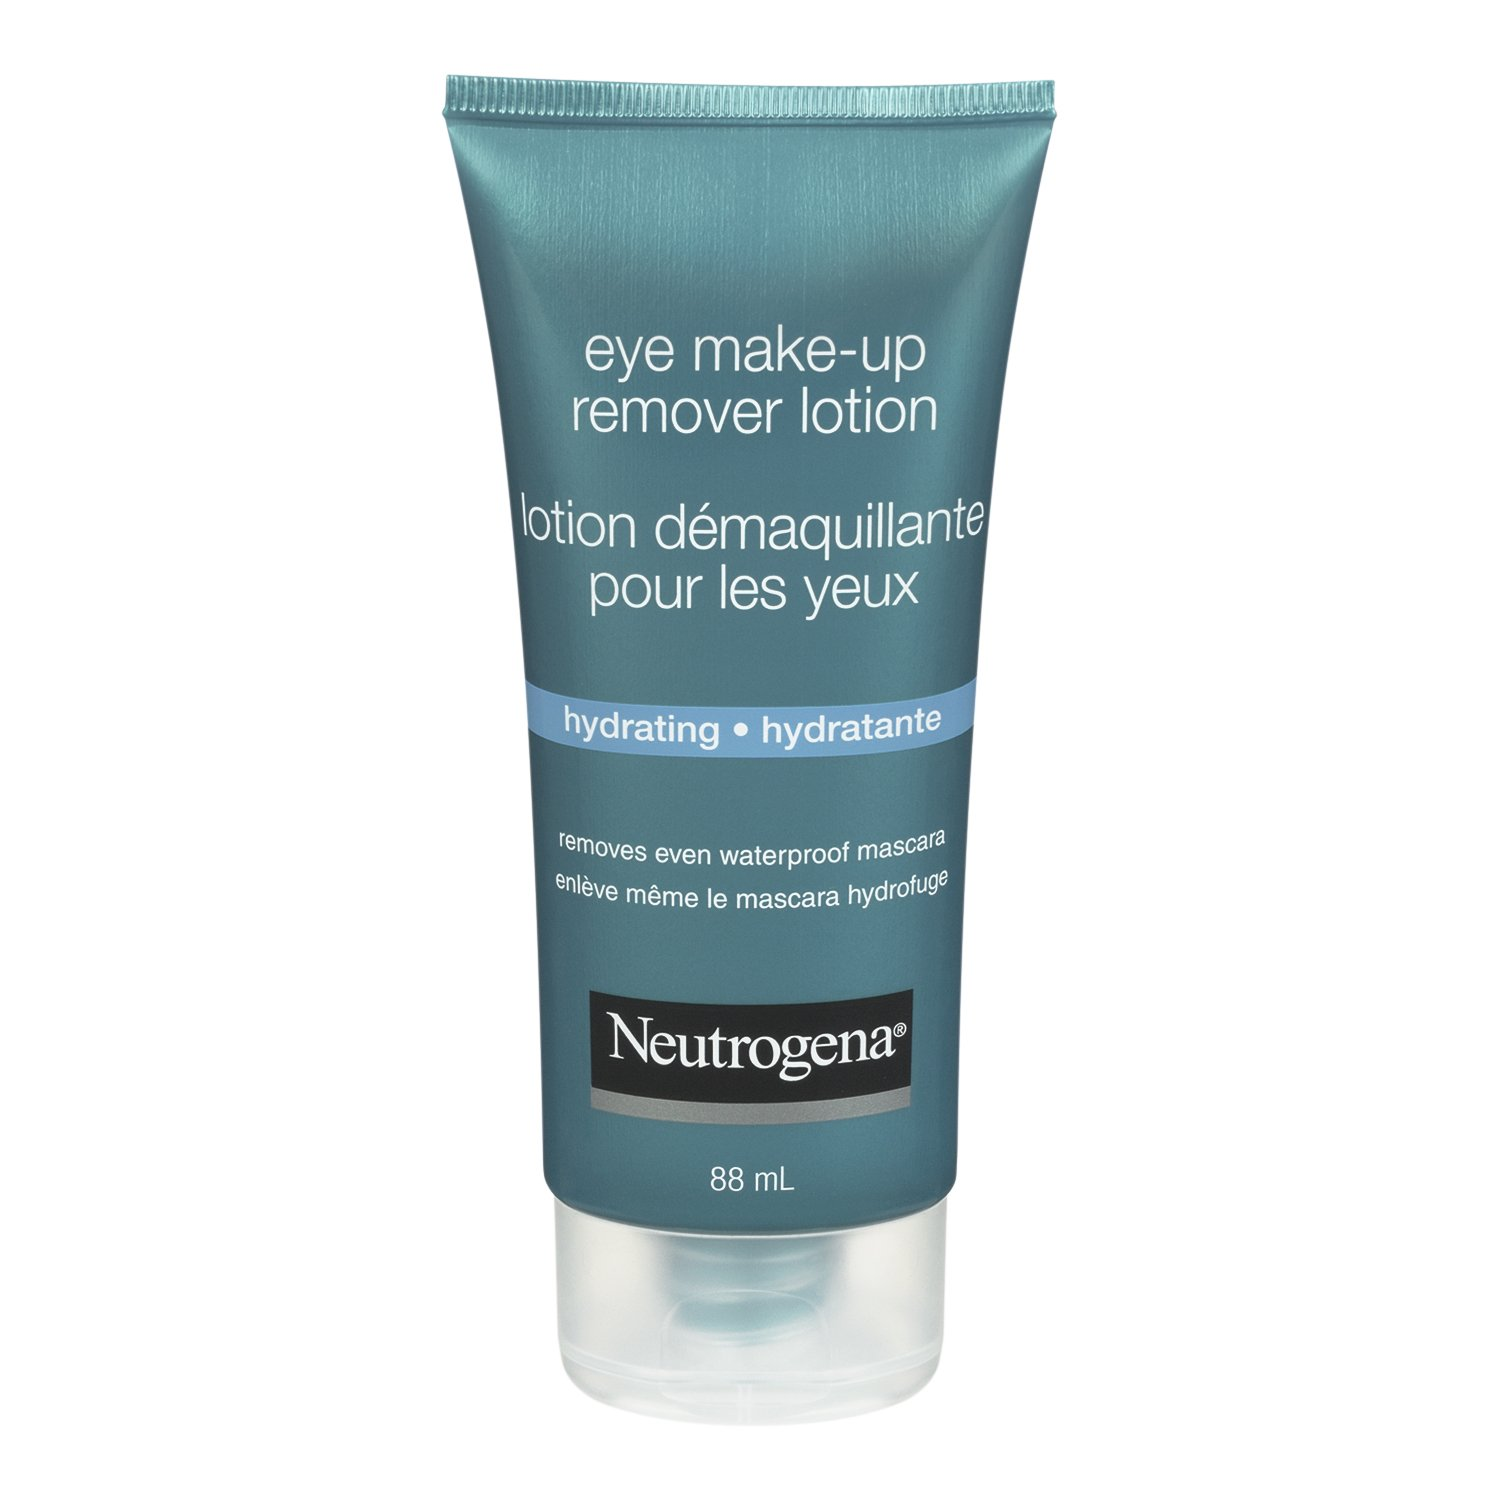 Neutrogena Eye Makeup Remover Lotion, Hydrating and Gentle on Skin, 88 mL Neutrogena Cleansers